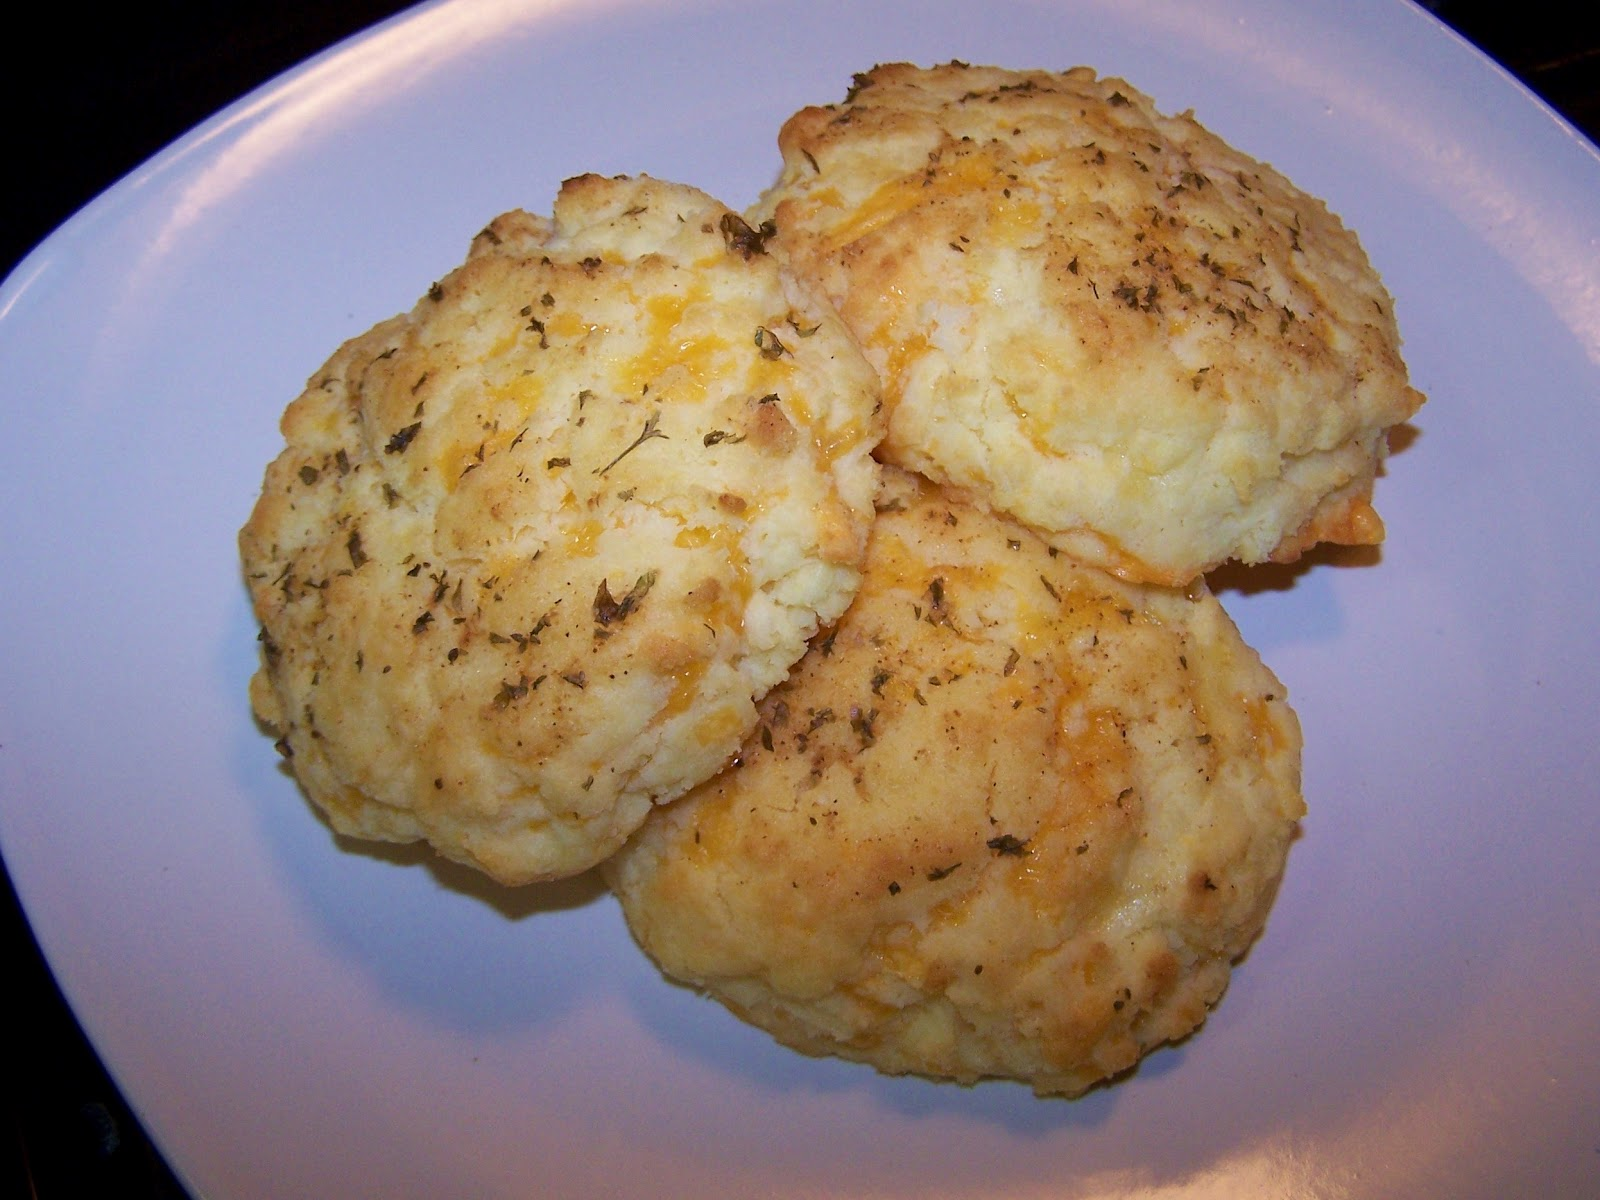 ... Gluten Free: Gluten Free Red Lobster's Cheddar Bay Biscuits Copycat